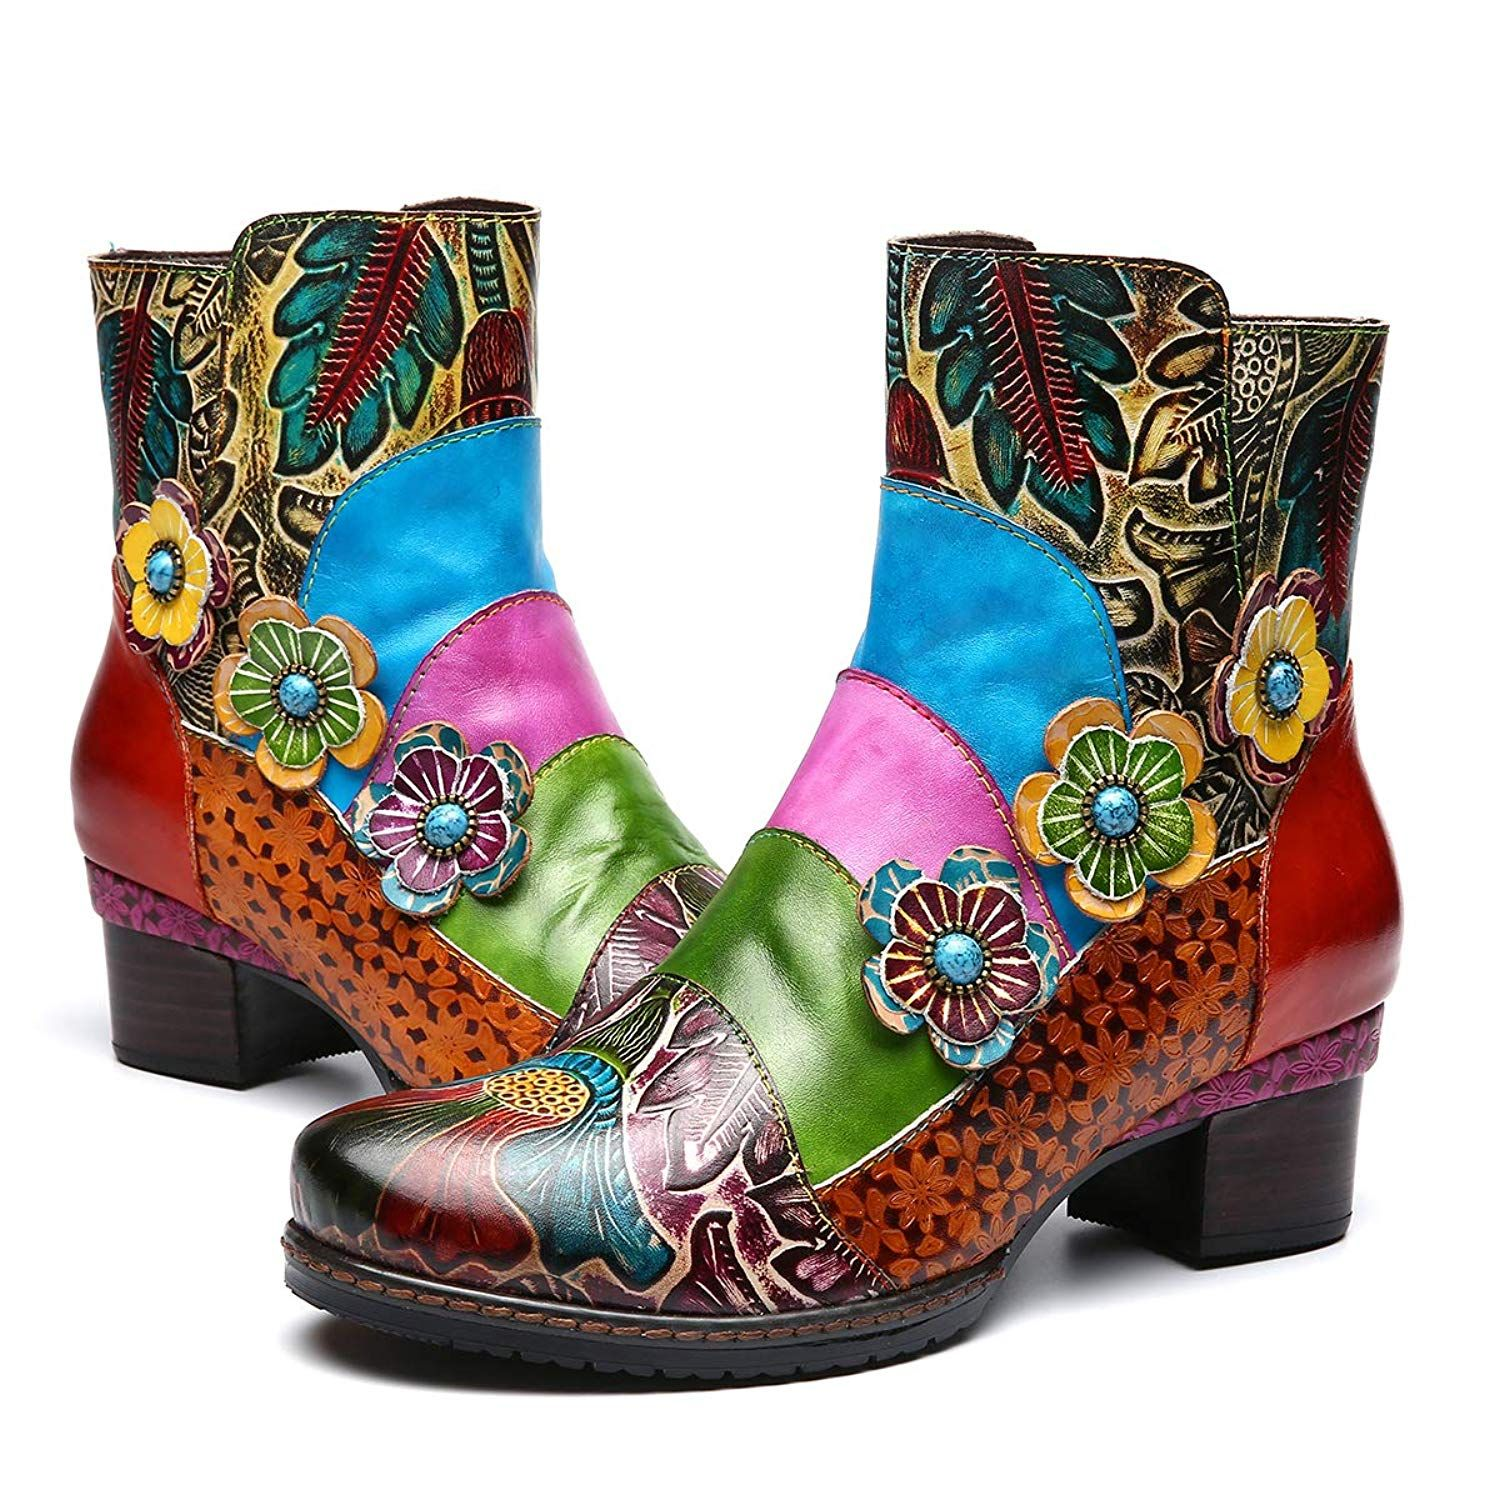 gracosy Leather Ankle Bootie Women/'s Block Heel Boots Handmade Splicing Pattern